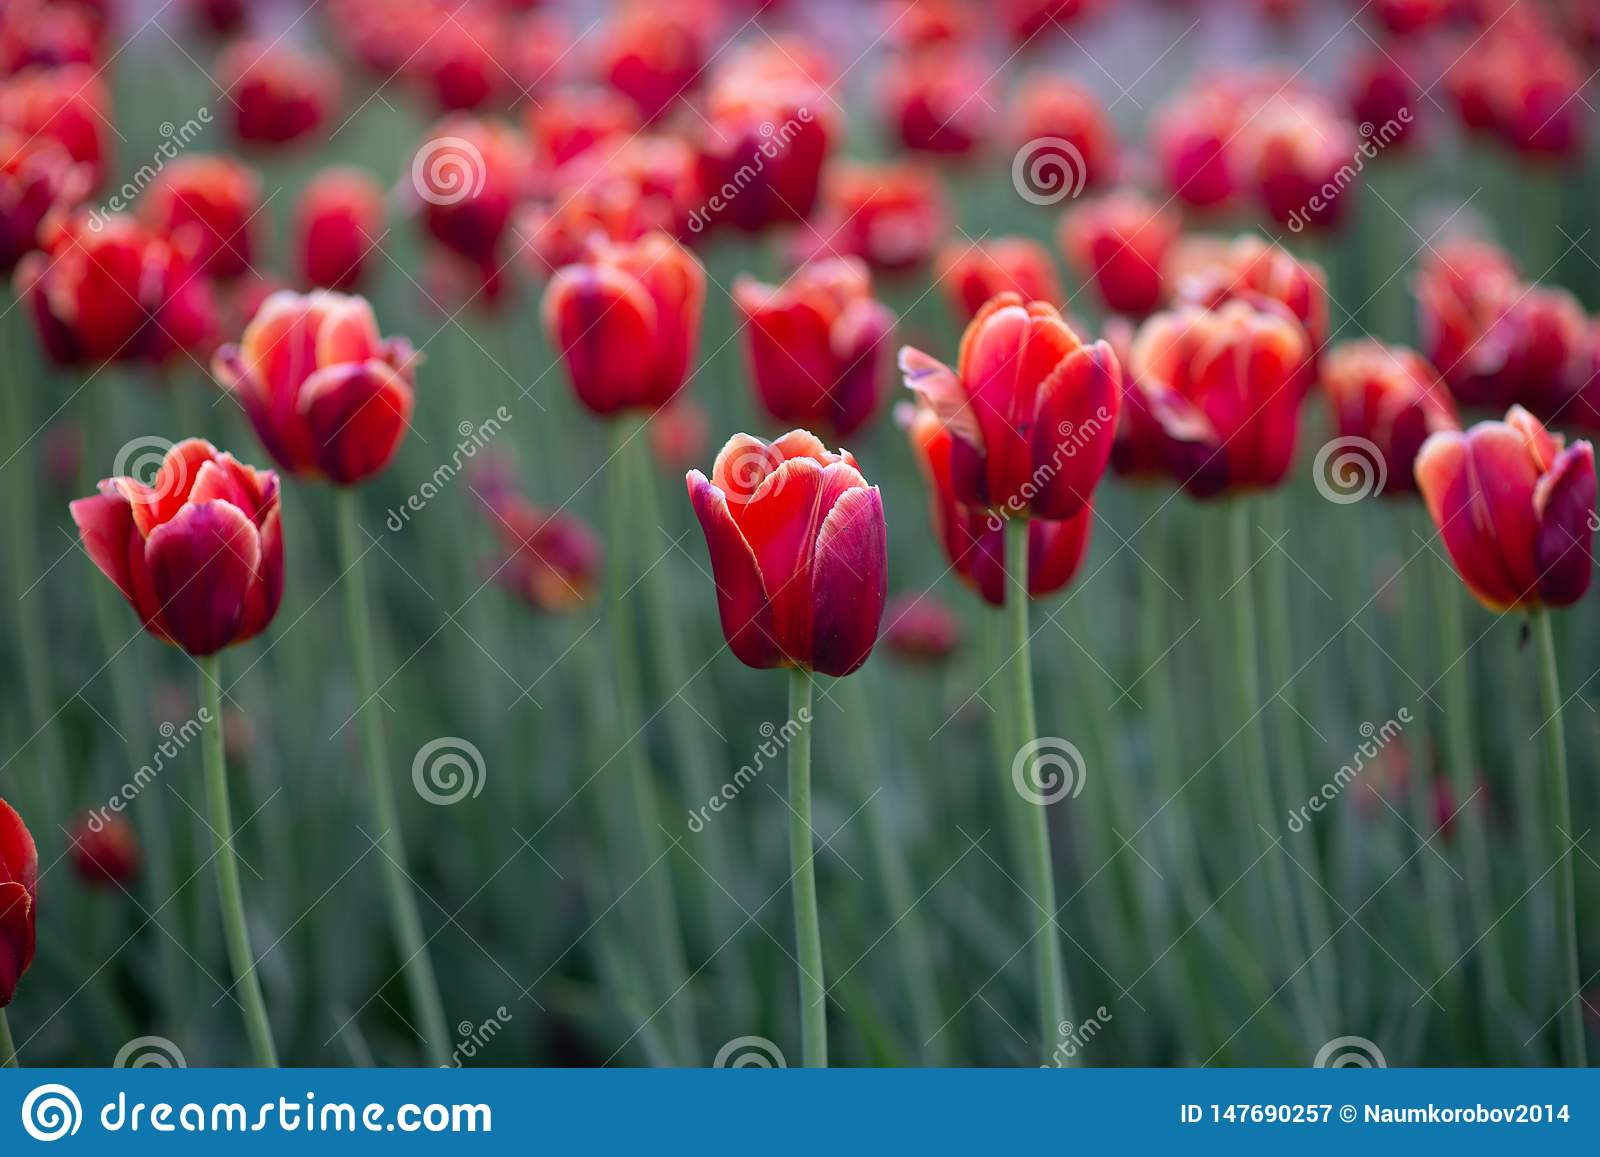 Spring Evening In Nature Desktop Wallpapers Postcard With Flowers Stock Image Image Of Spring Flower 147690257